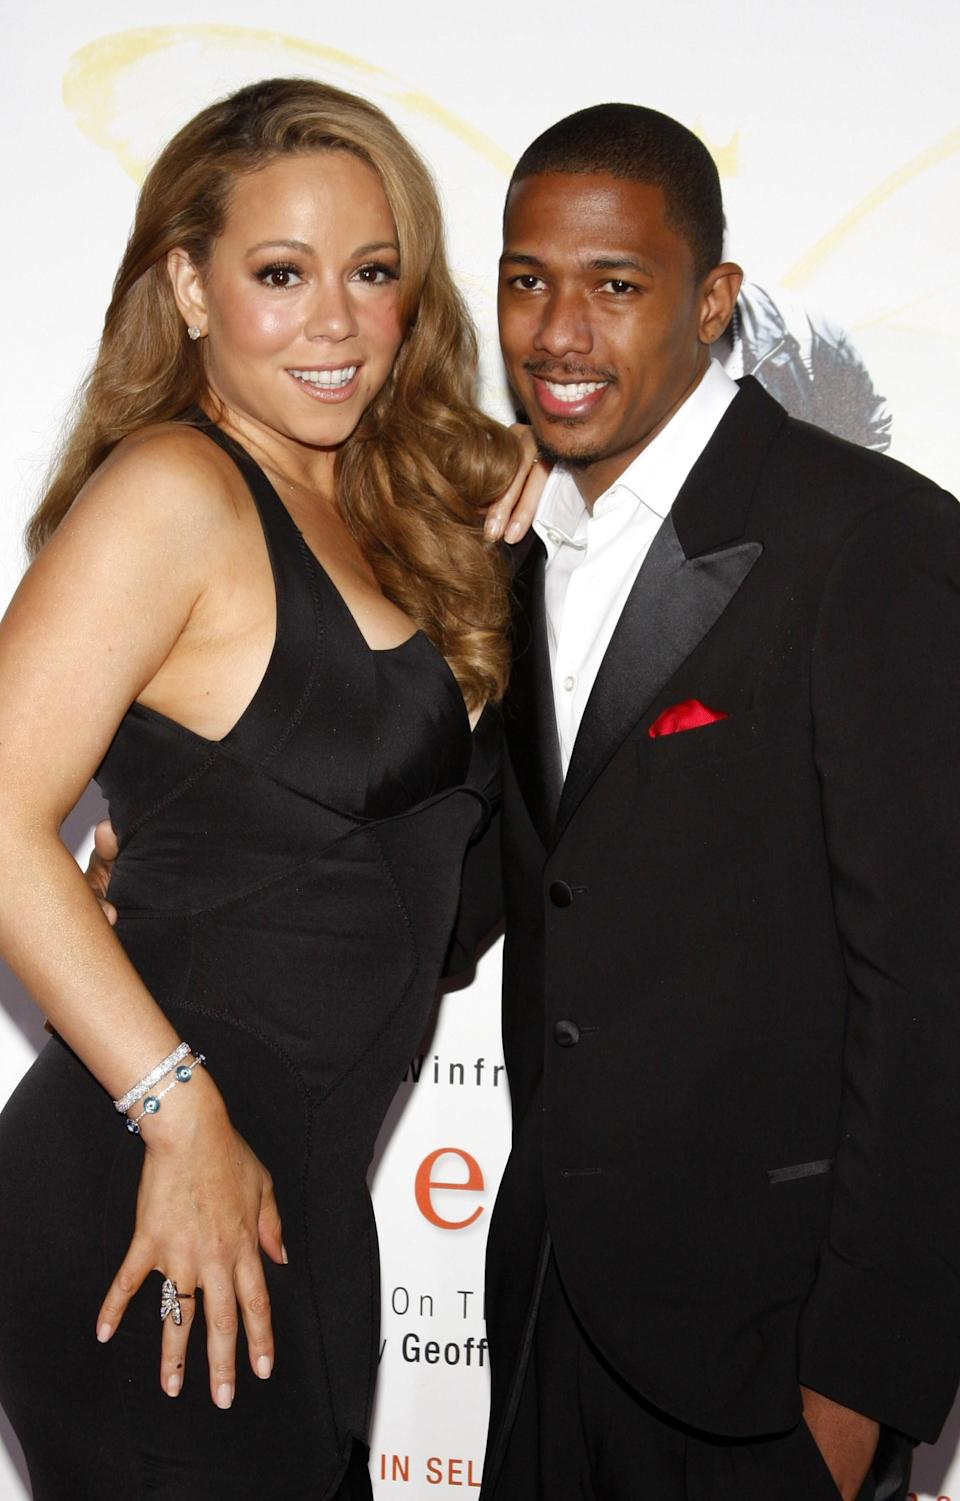 Mariah Carey and Nick Cannon on the red carpet